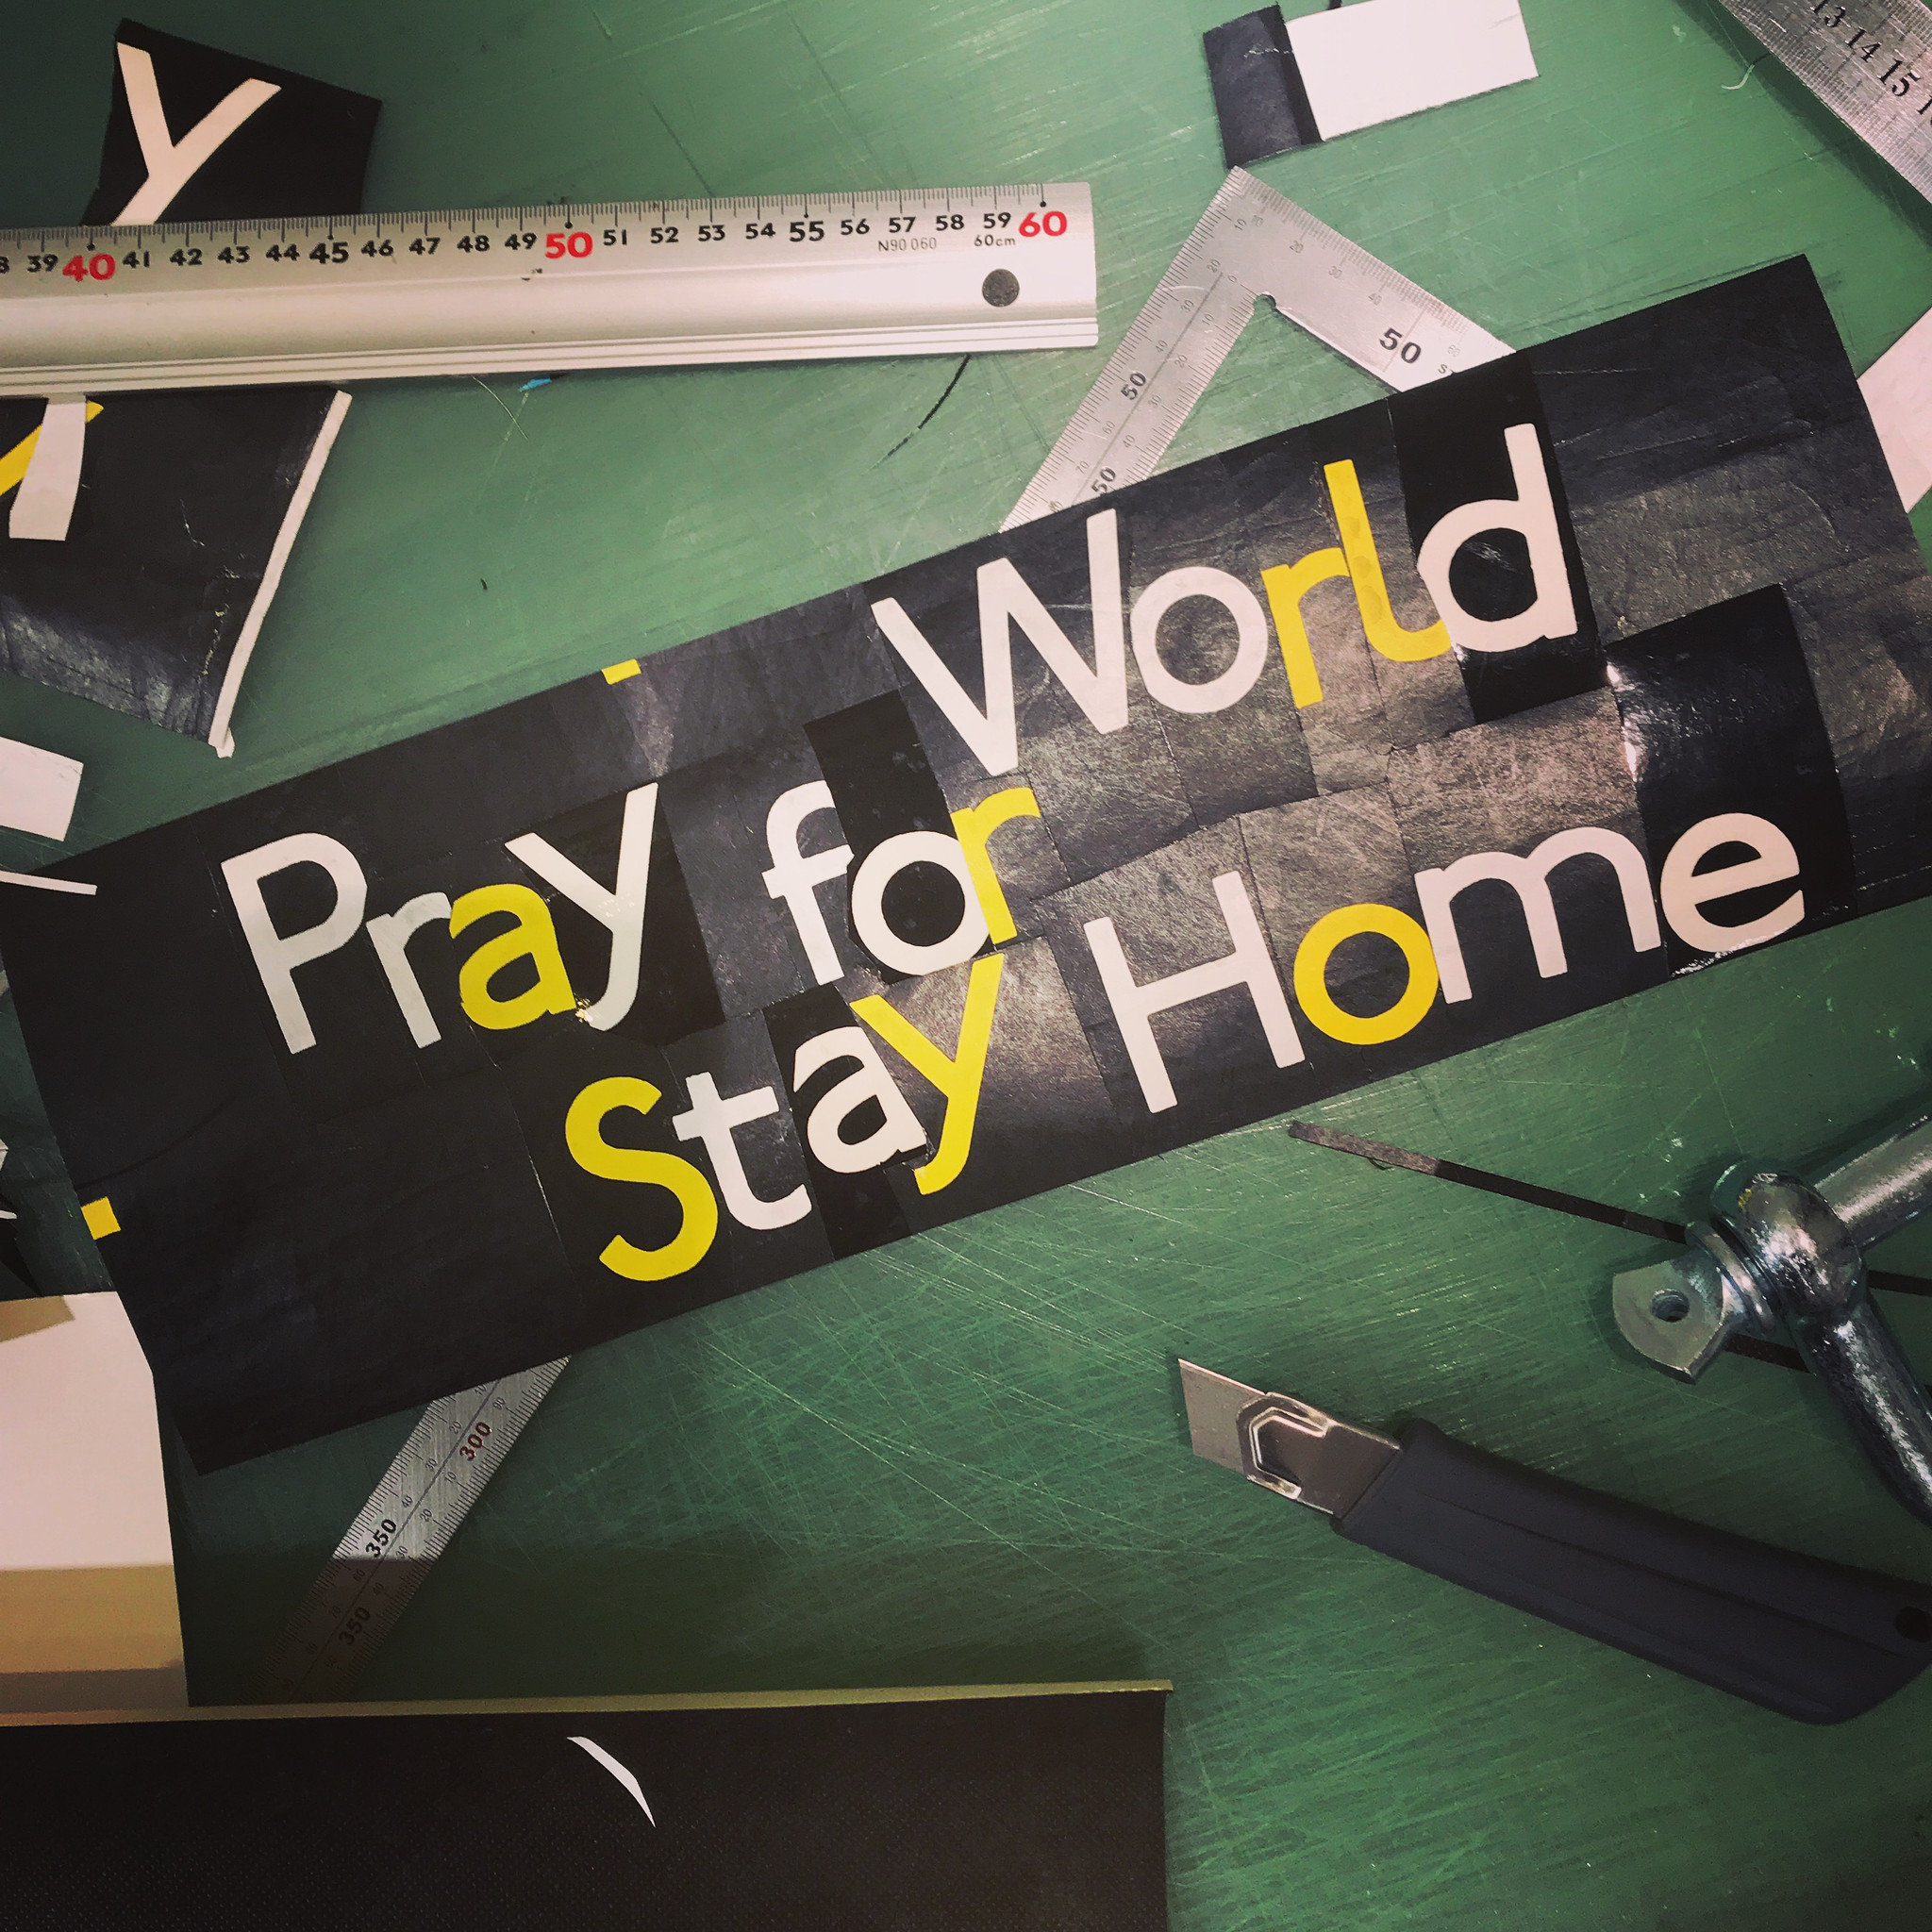 Pray for World Stay Home